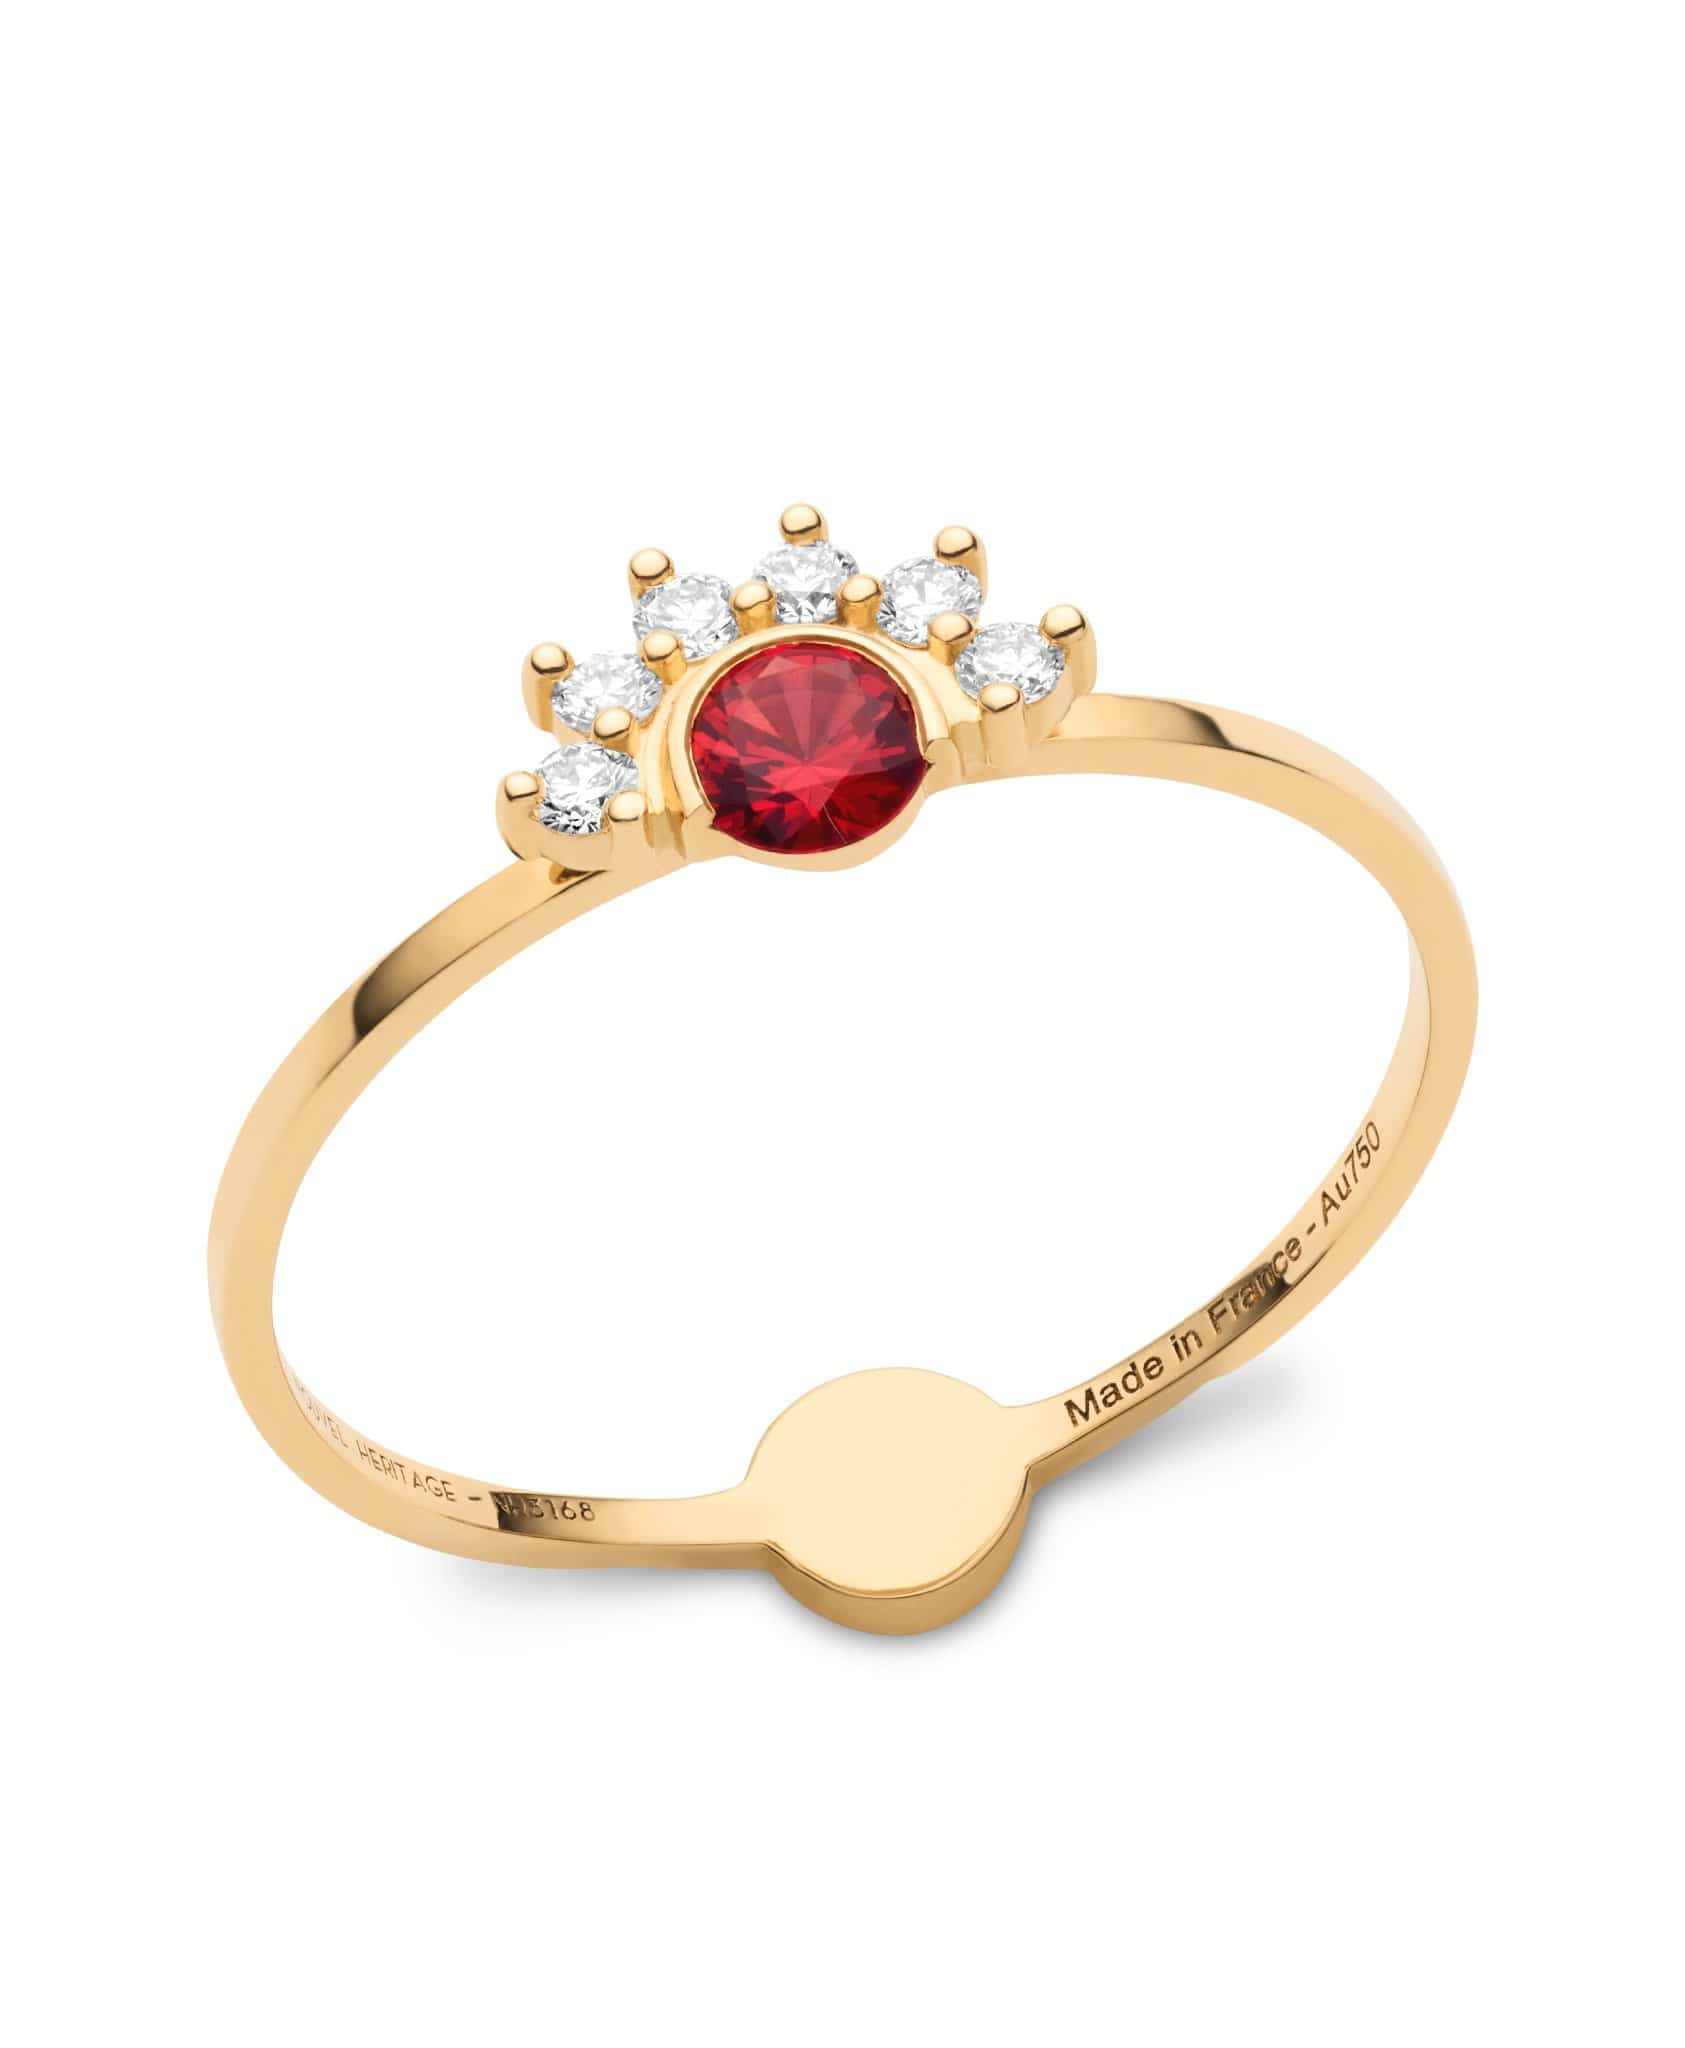 Red Spinel Ring - Nouvel Heritage